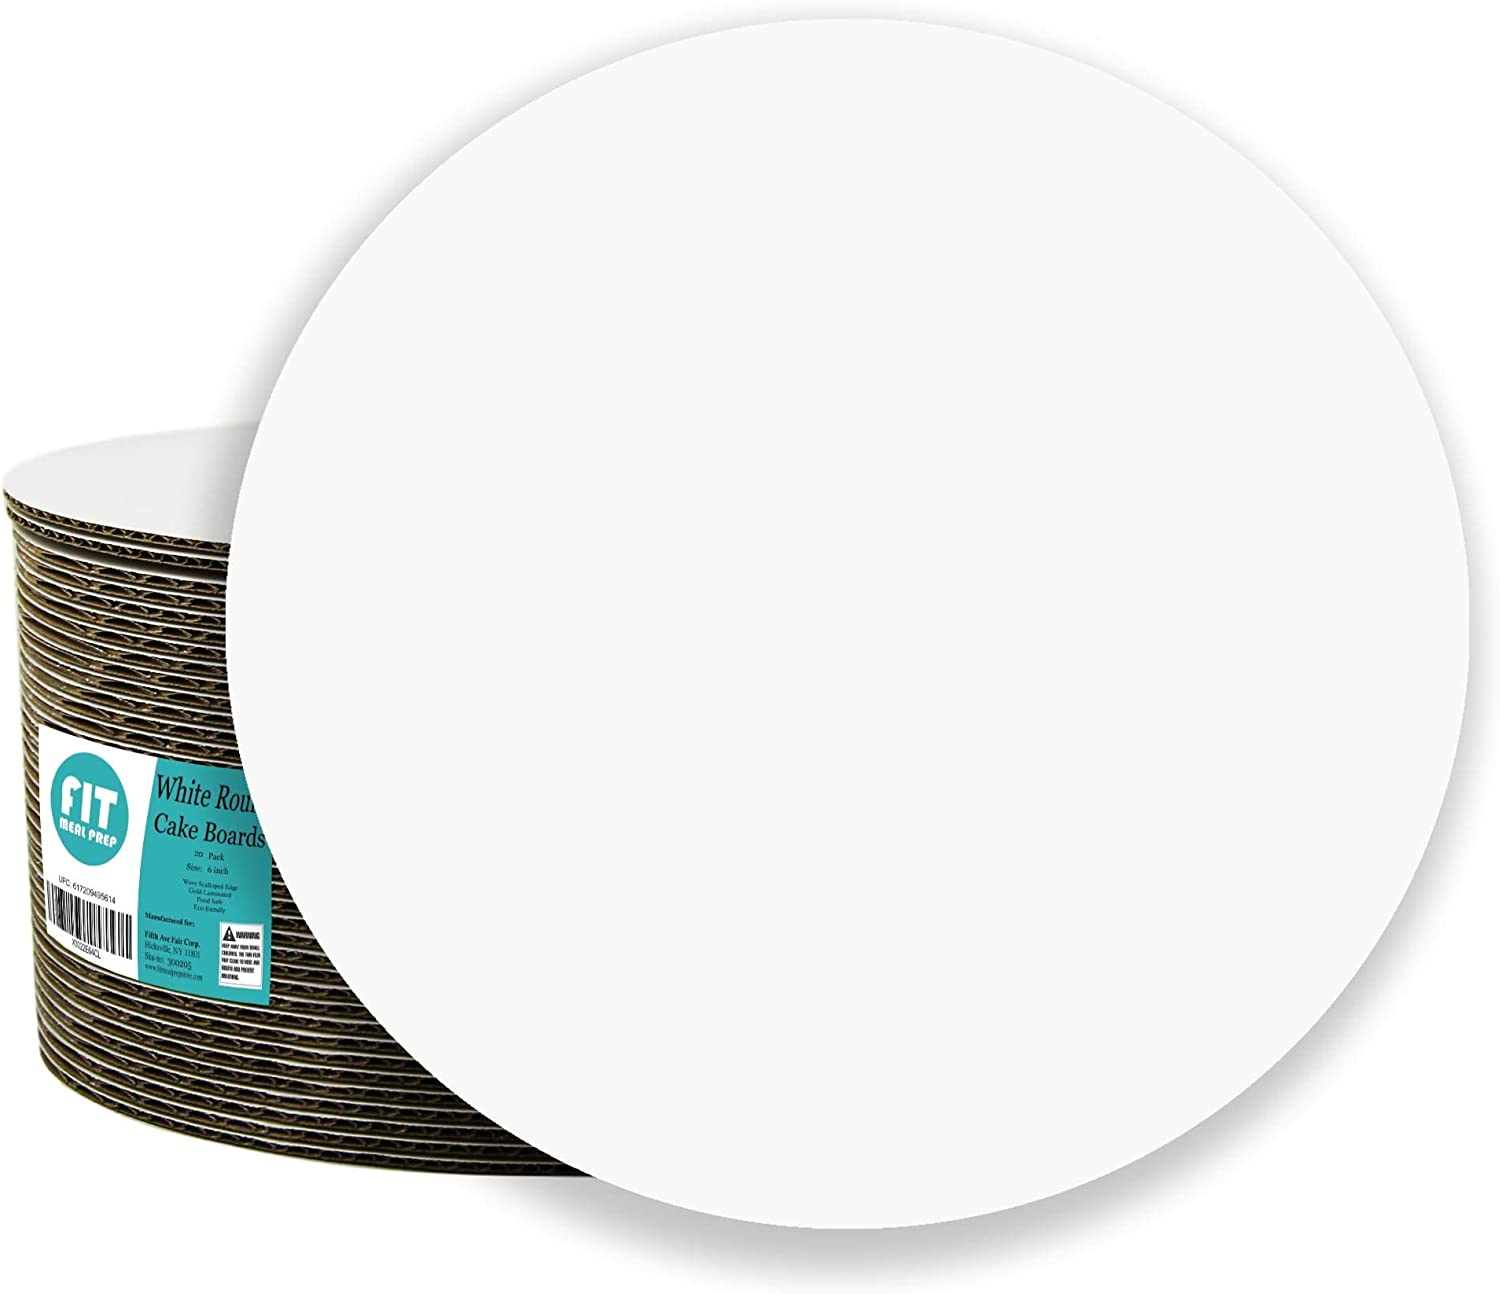 6 of Each Size Cake Board Rounds 8 and 10-Inch Grease Proof Set of 18 Perfect for Cake Decorating 6 Circle Cardboard Base